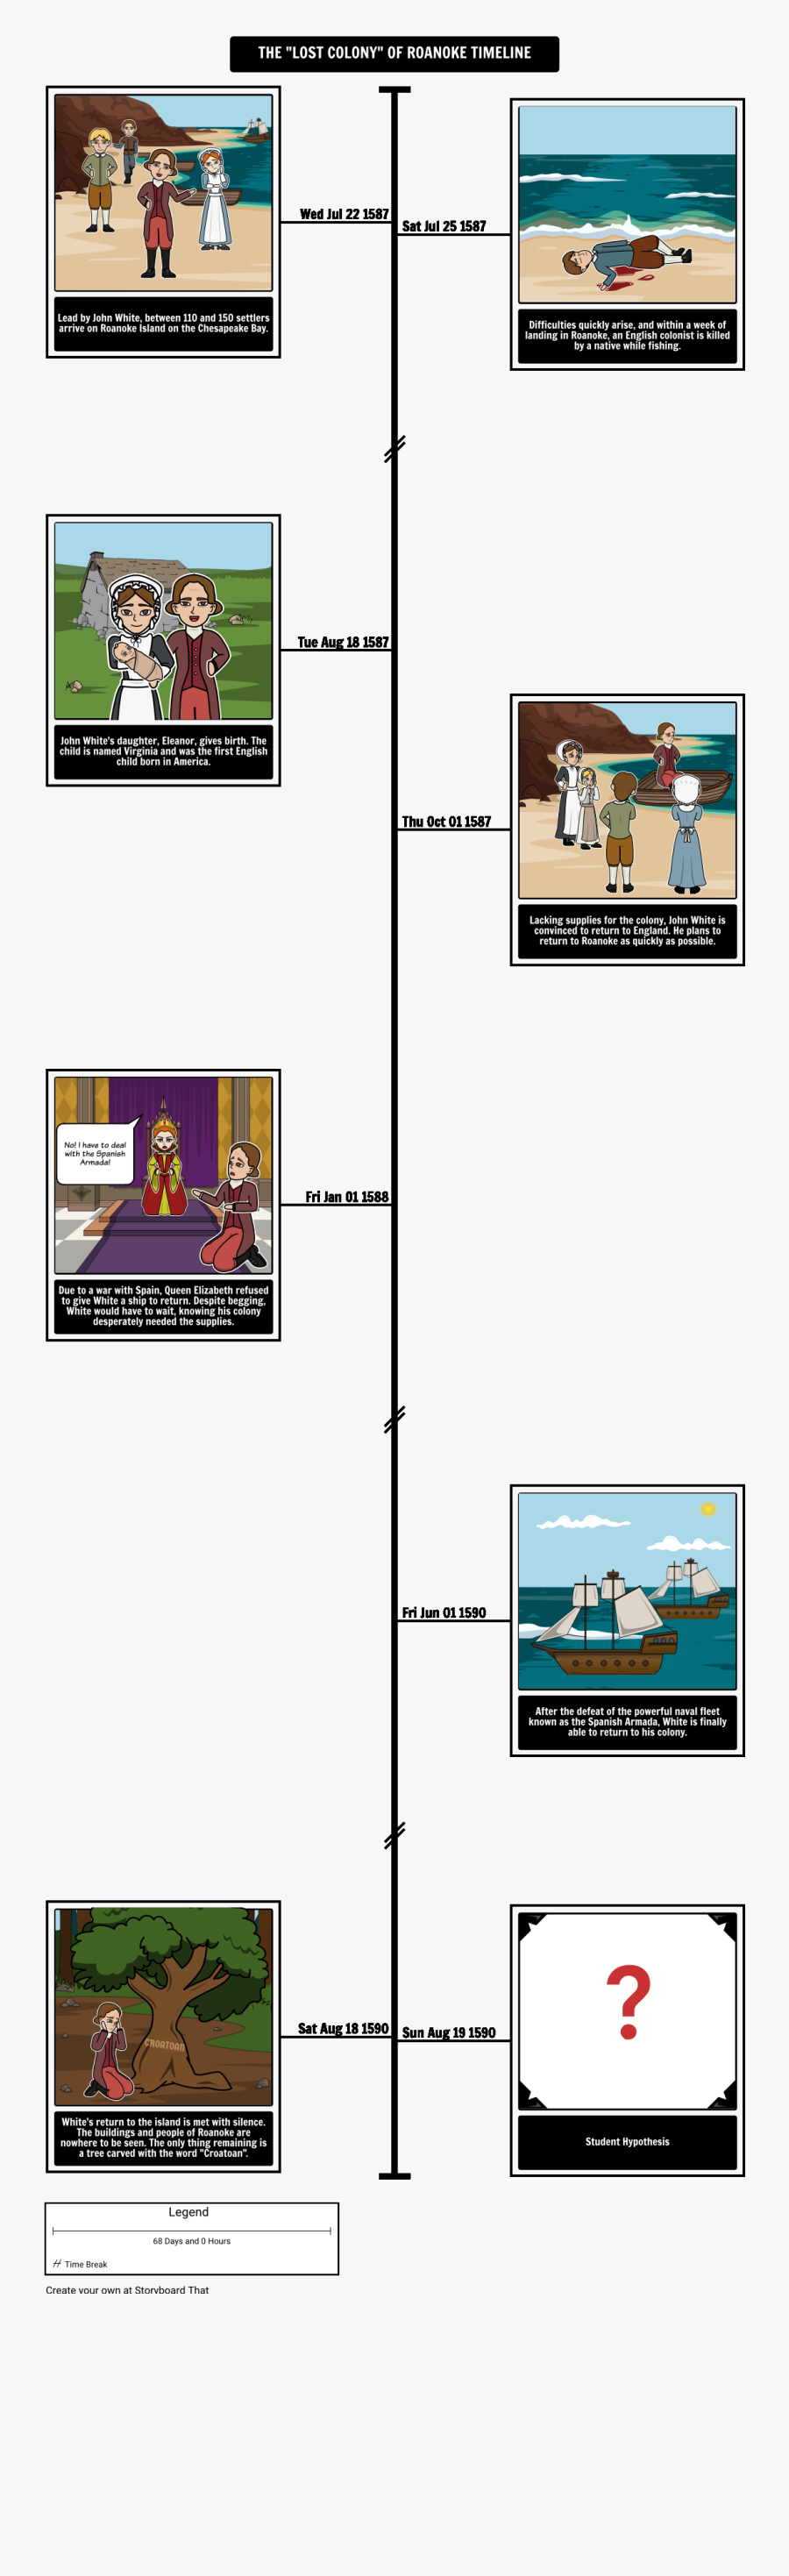 Transparent Timeline Voyage Christopher Columbus - Roanoke ...